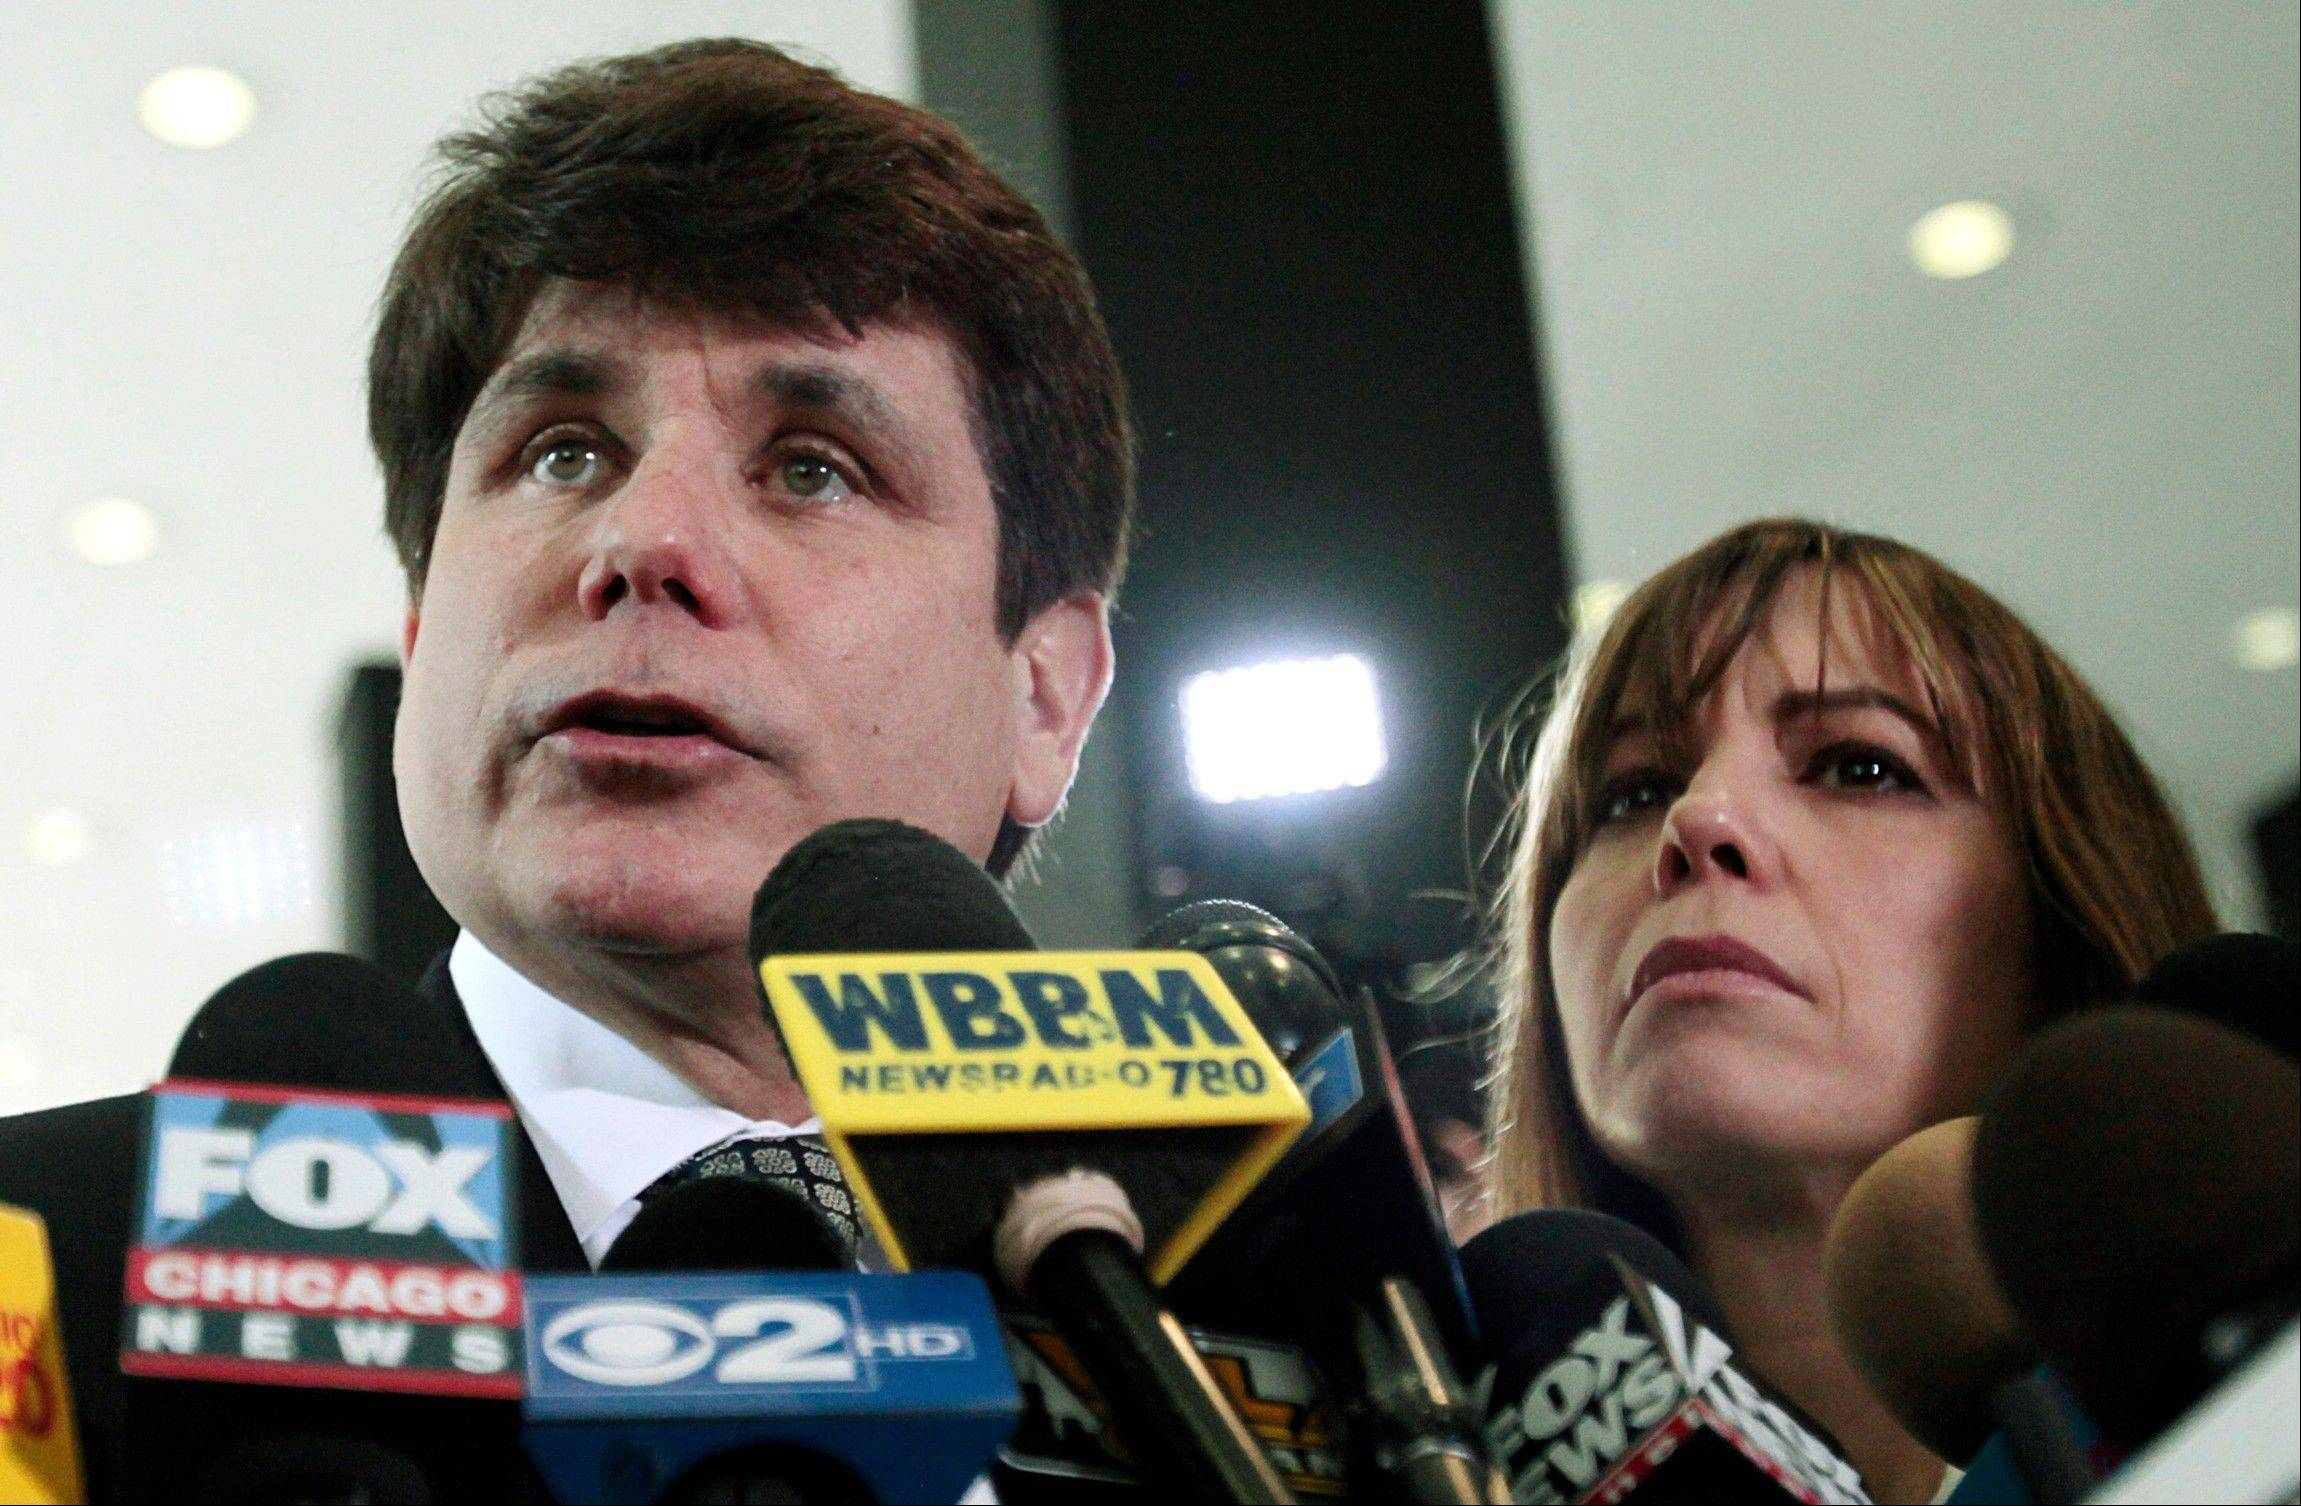 Lawyers for Rod Blagojevich have taken what could be a step toward appealing the former Illinois governor's recent convictions.